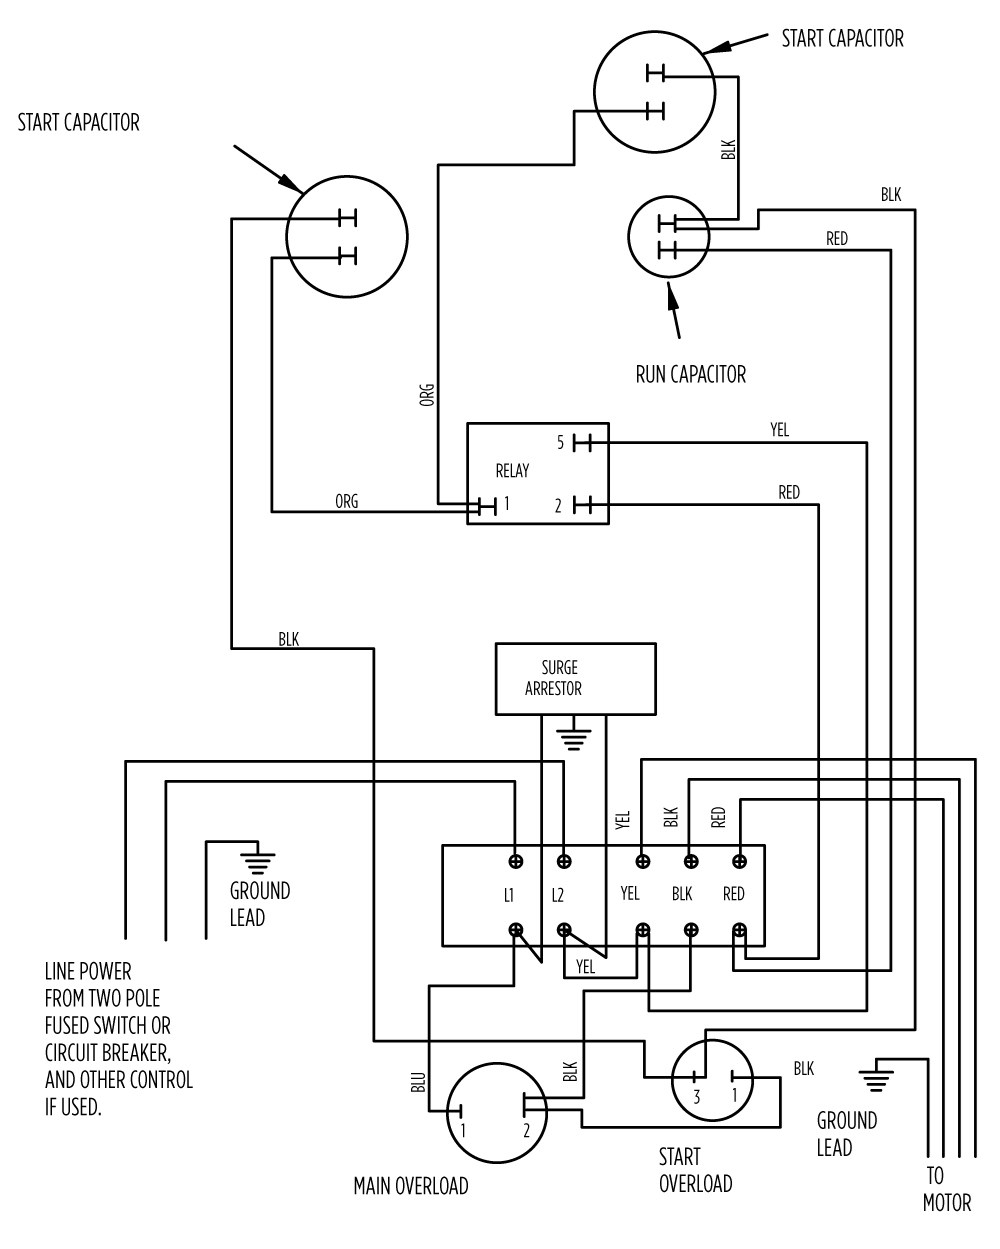 75 hp standard 282 201 9210_aim gallery?format=jpg&quality=80 aim manual page 56 single phase motors and controls motor well pump control box wiring diagram at gsmx.co